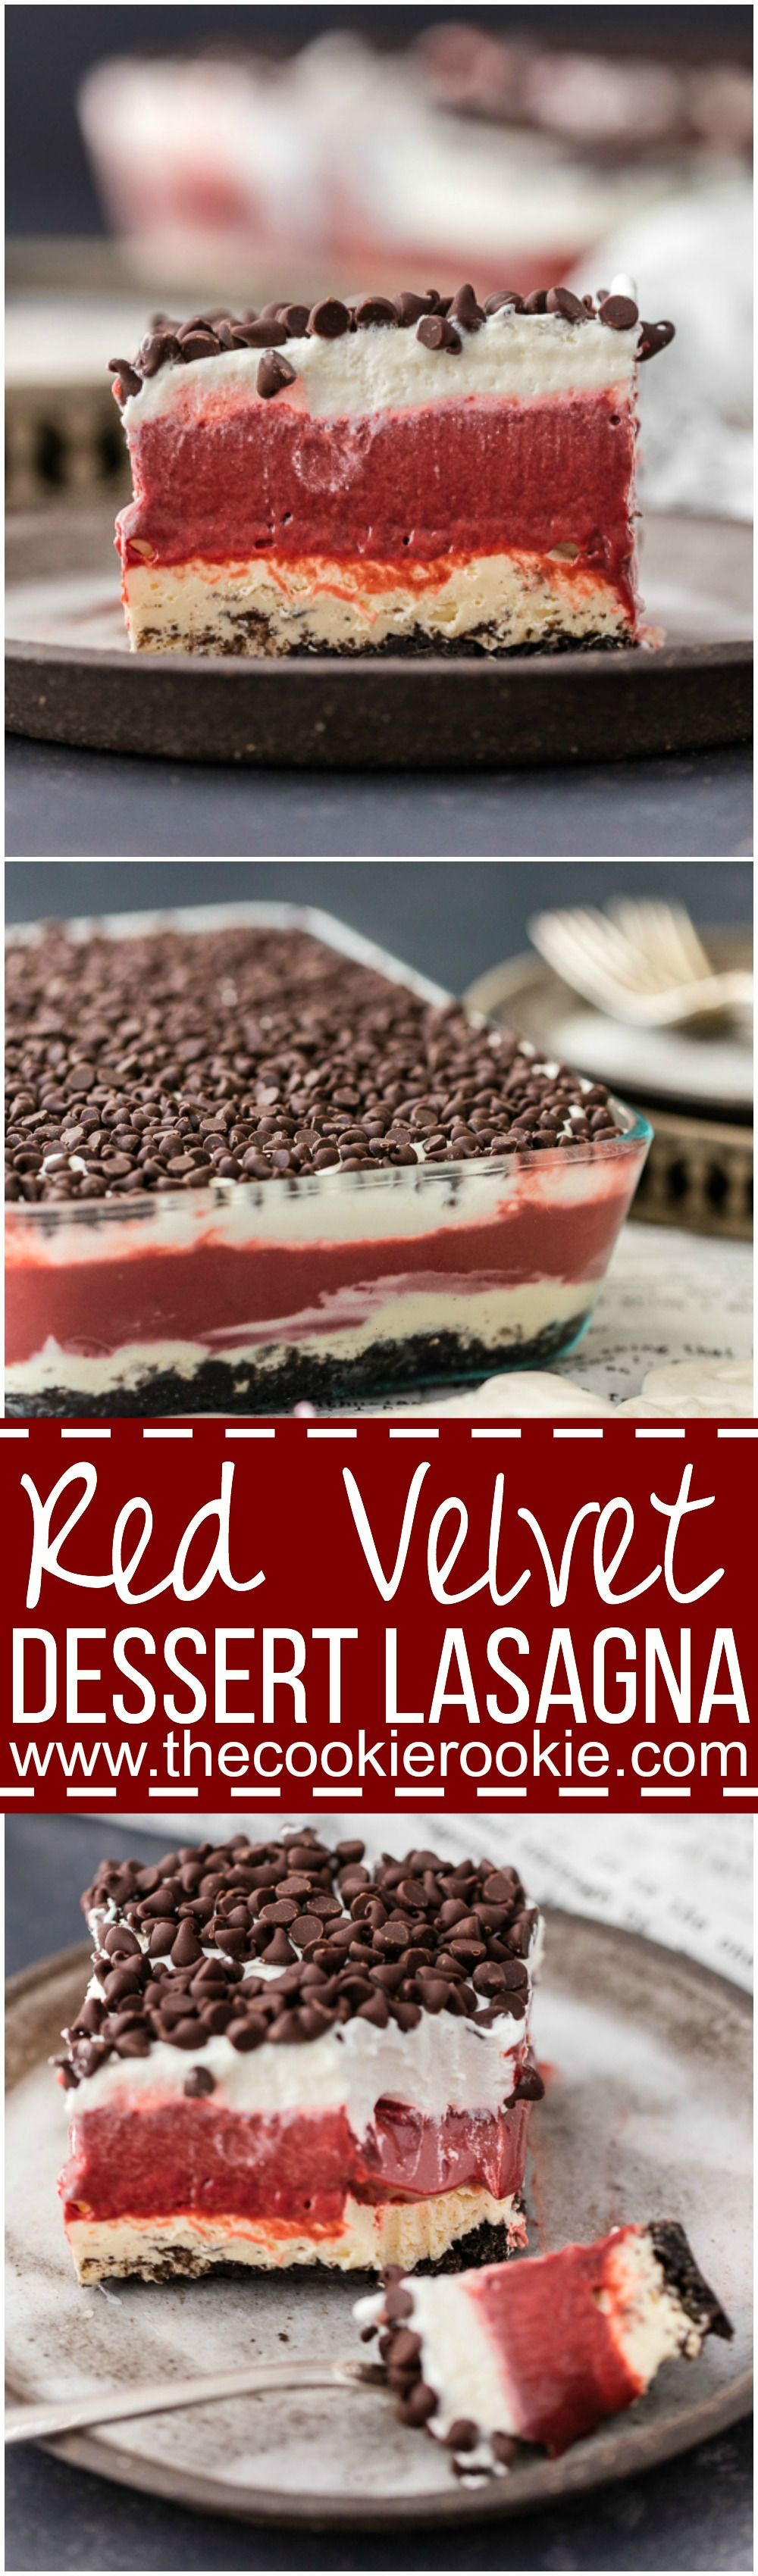 how to make puddings and desserts